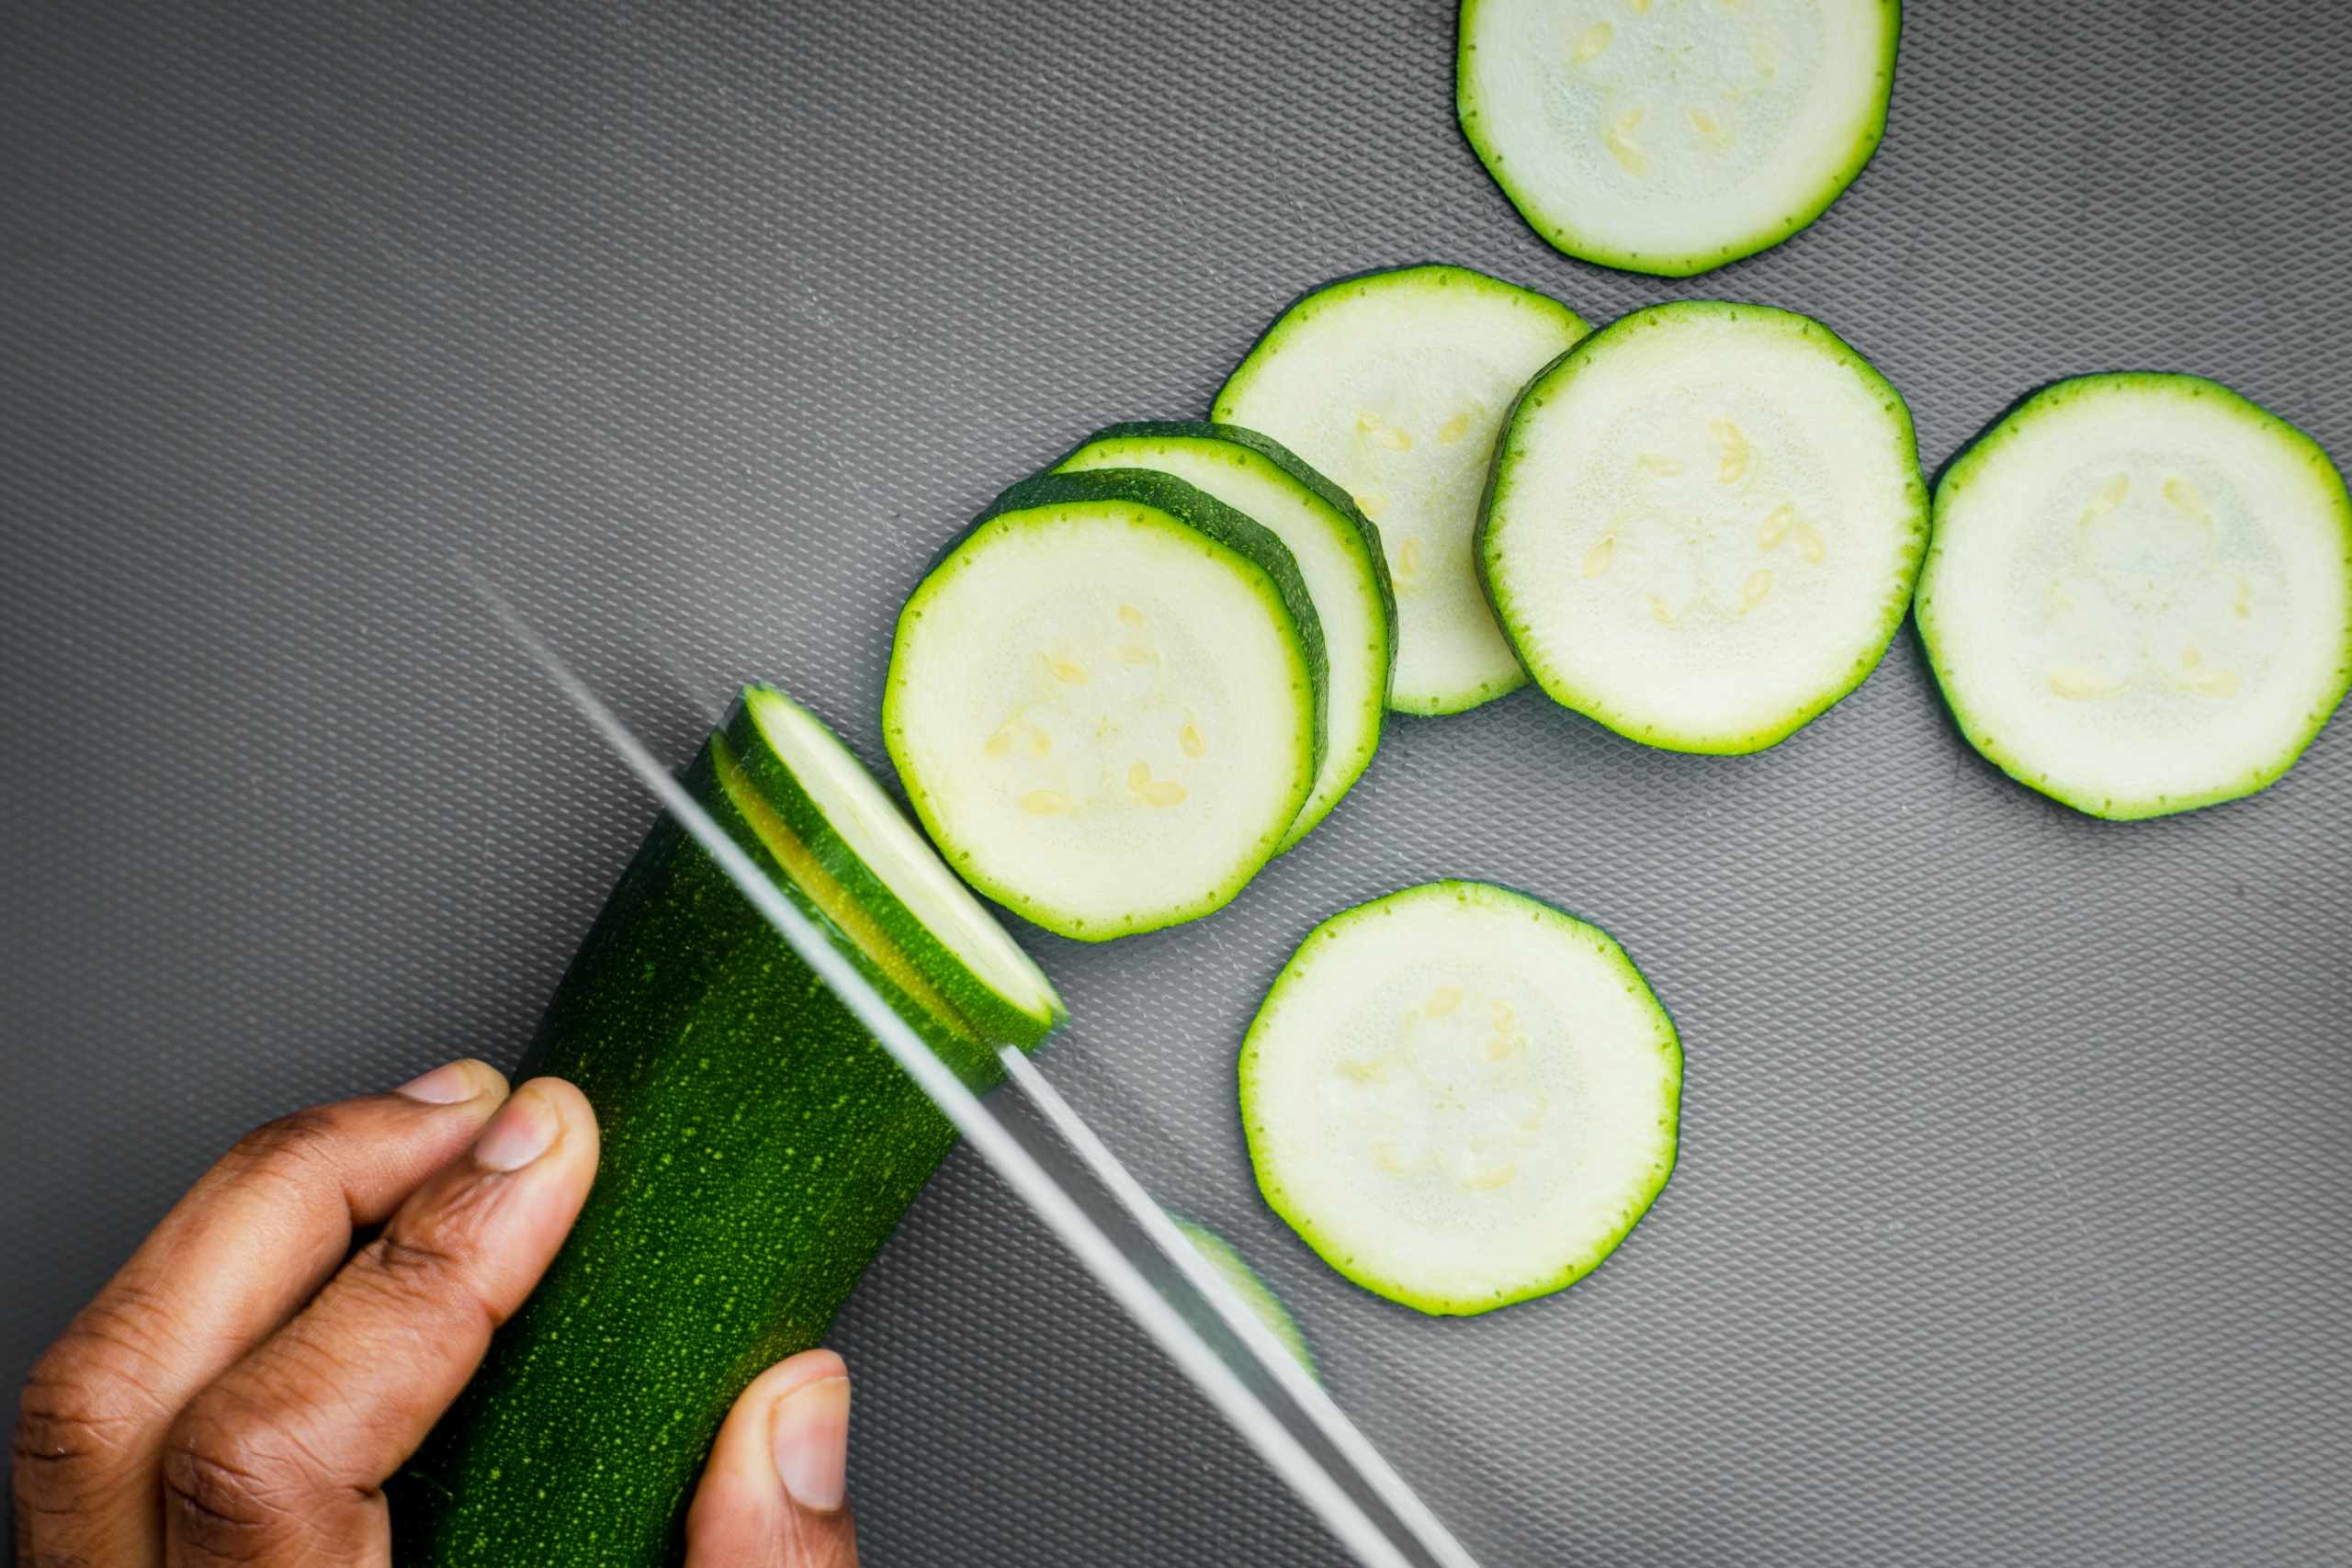 Foods can help you to get rid of bloating